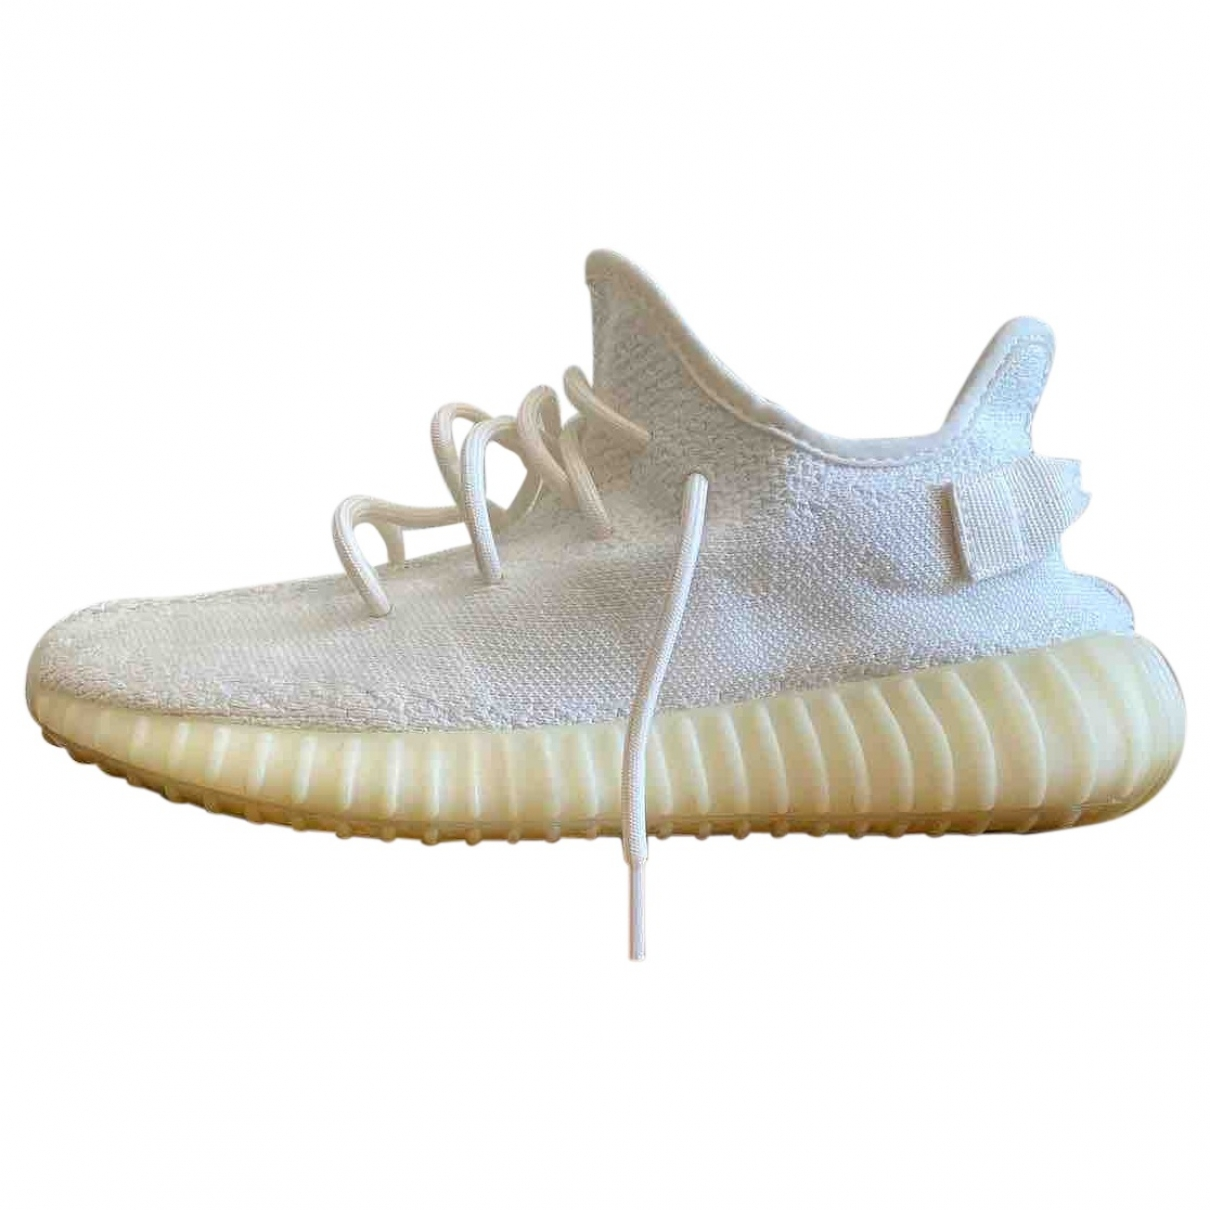 Yeezy X Adidas - Baskets Boost 350 V2 pour homme - blanc